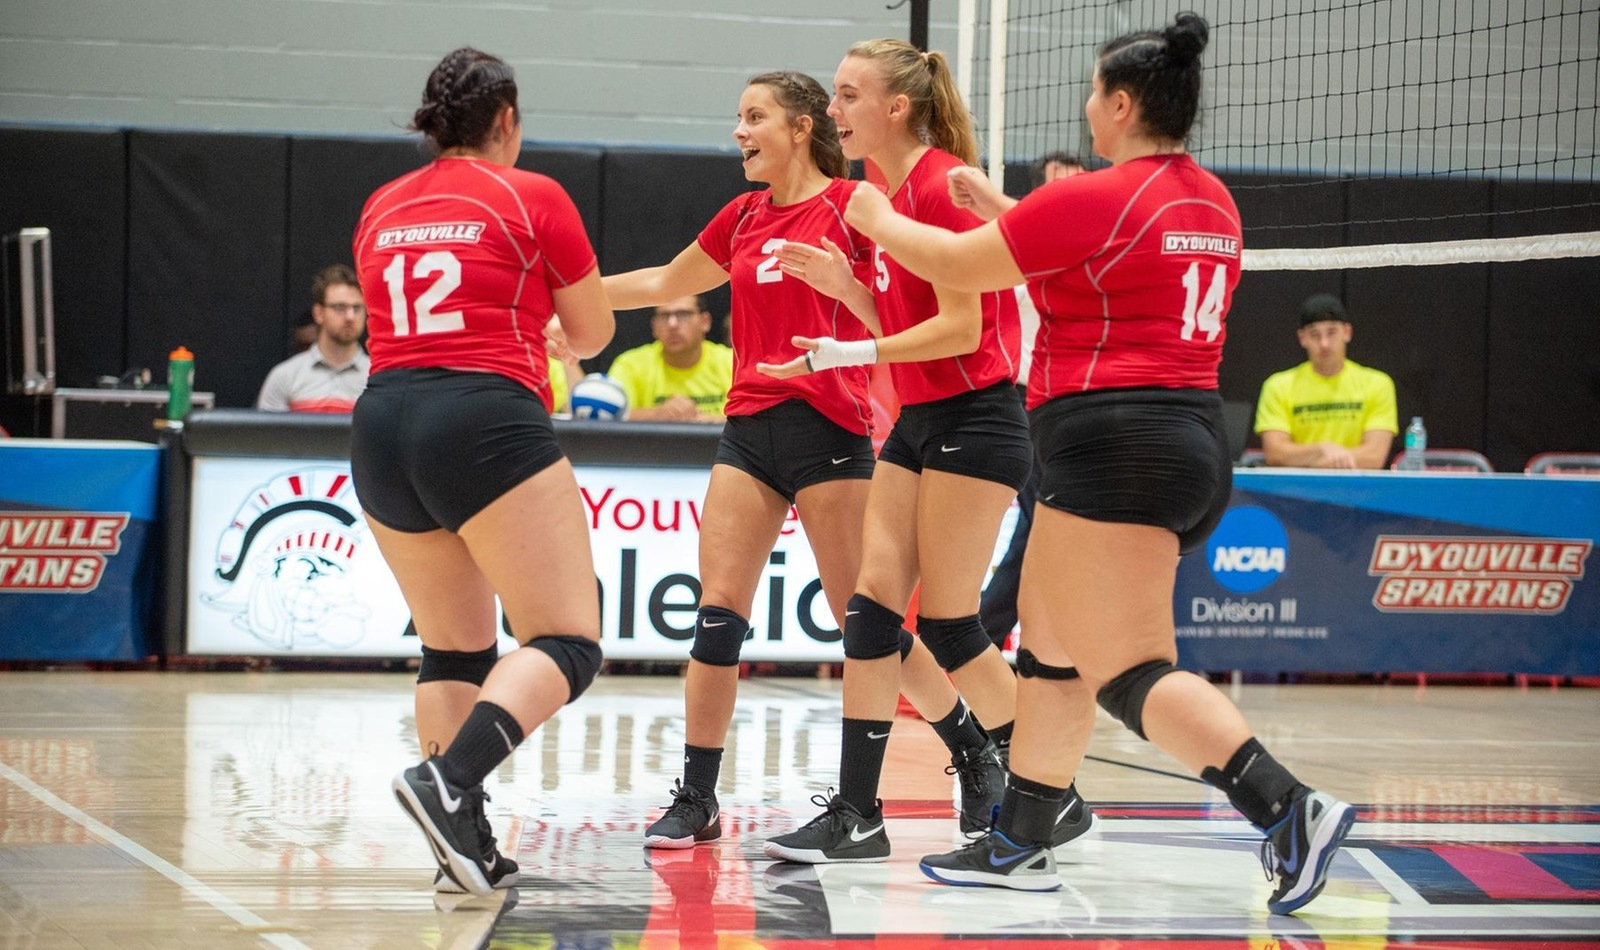 Weekend Sweep Gives Women's Volleyball Fighting Chance at Playoffs